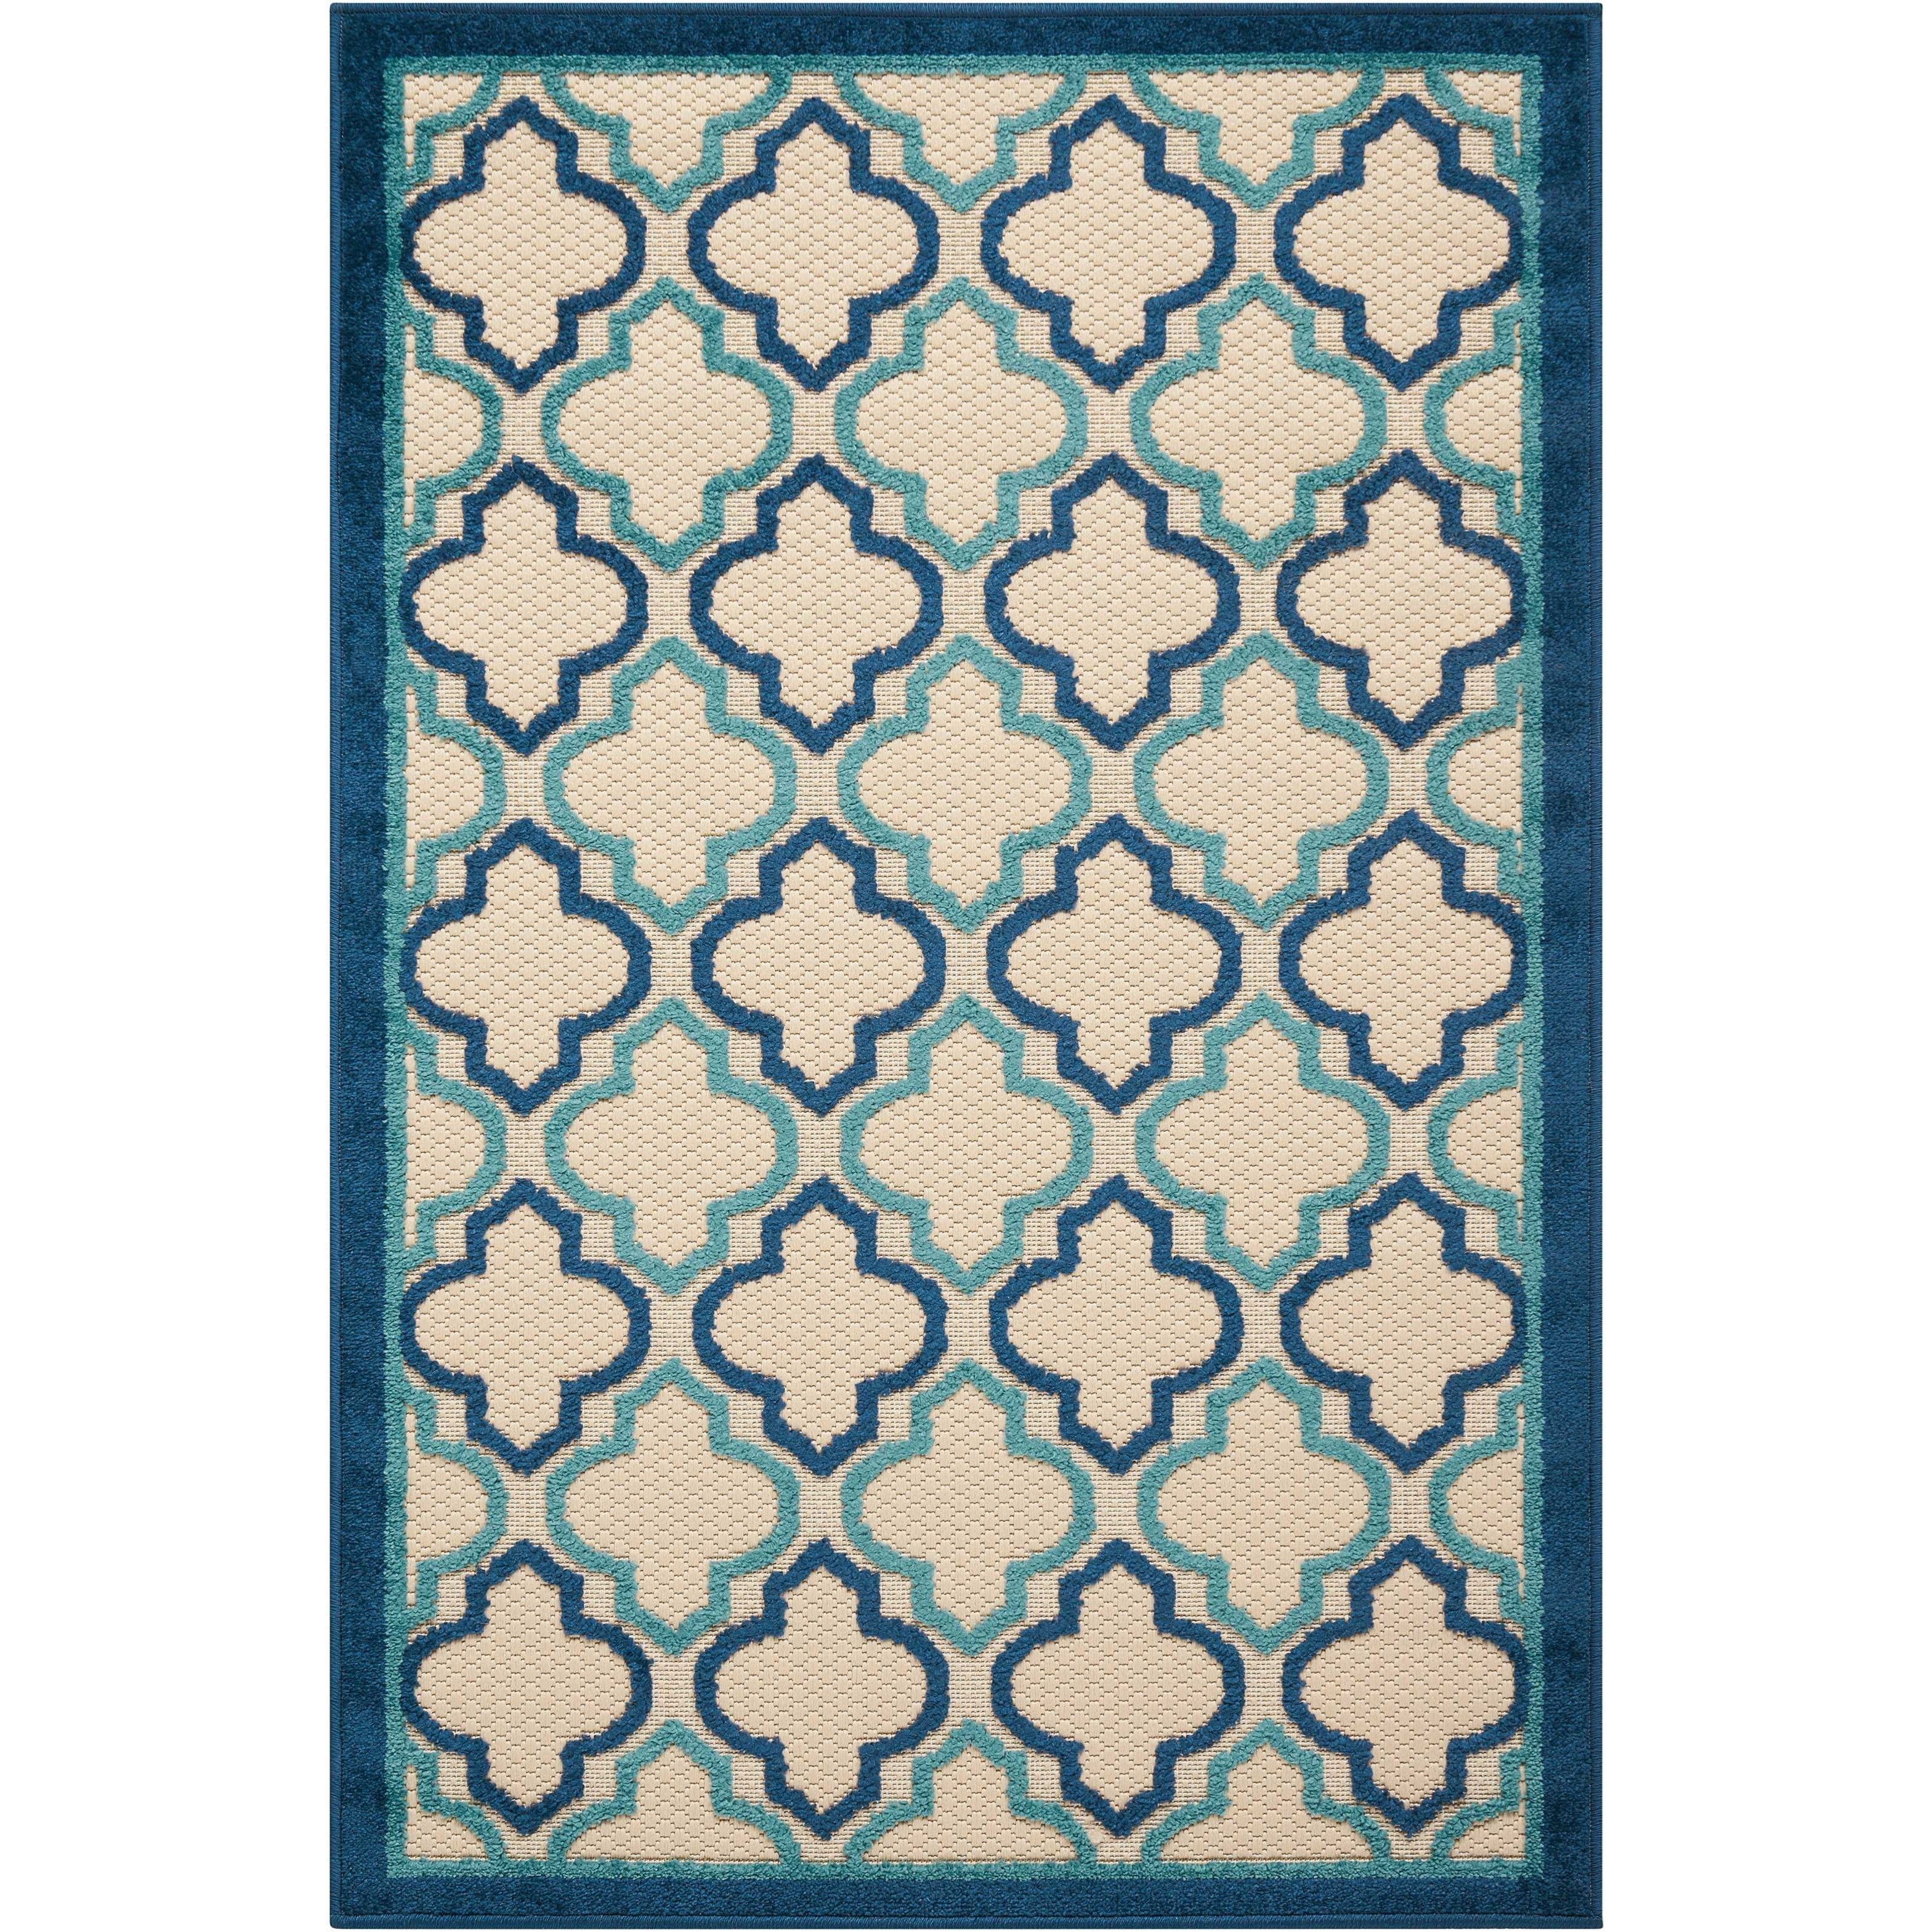 "2'8"" x 4' Navy Rectangle Rug"